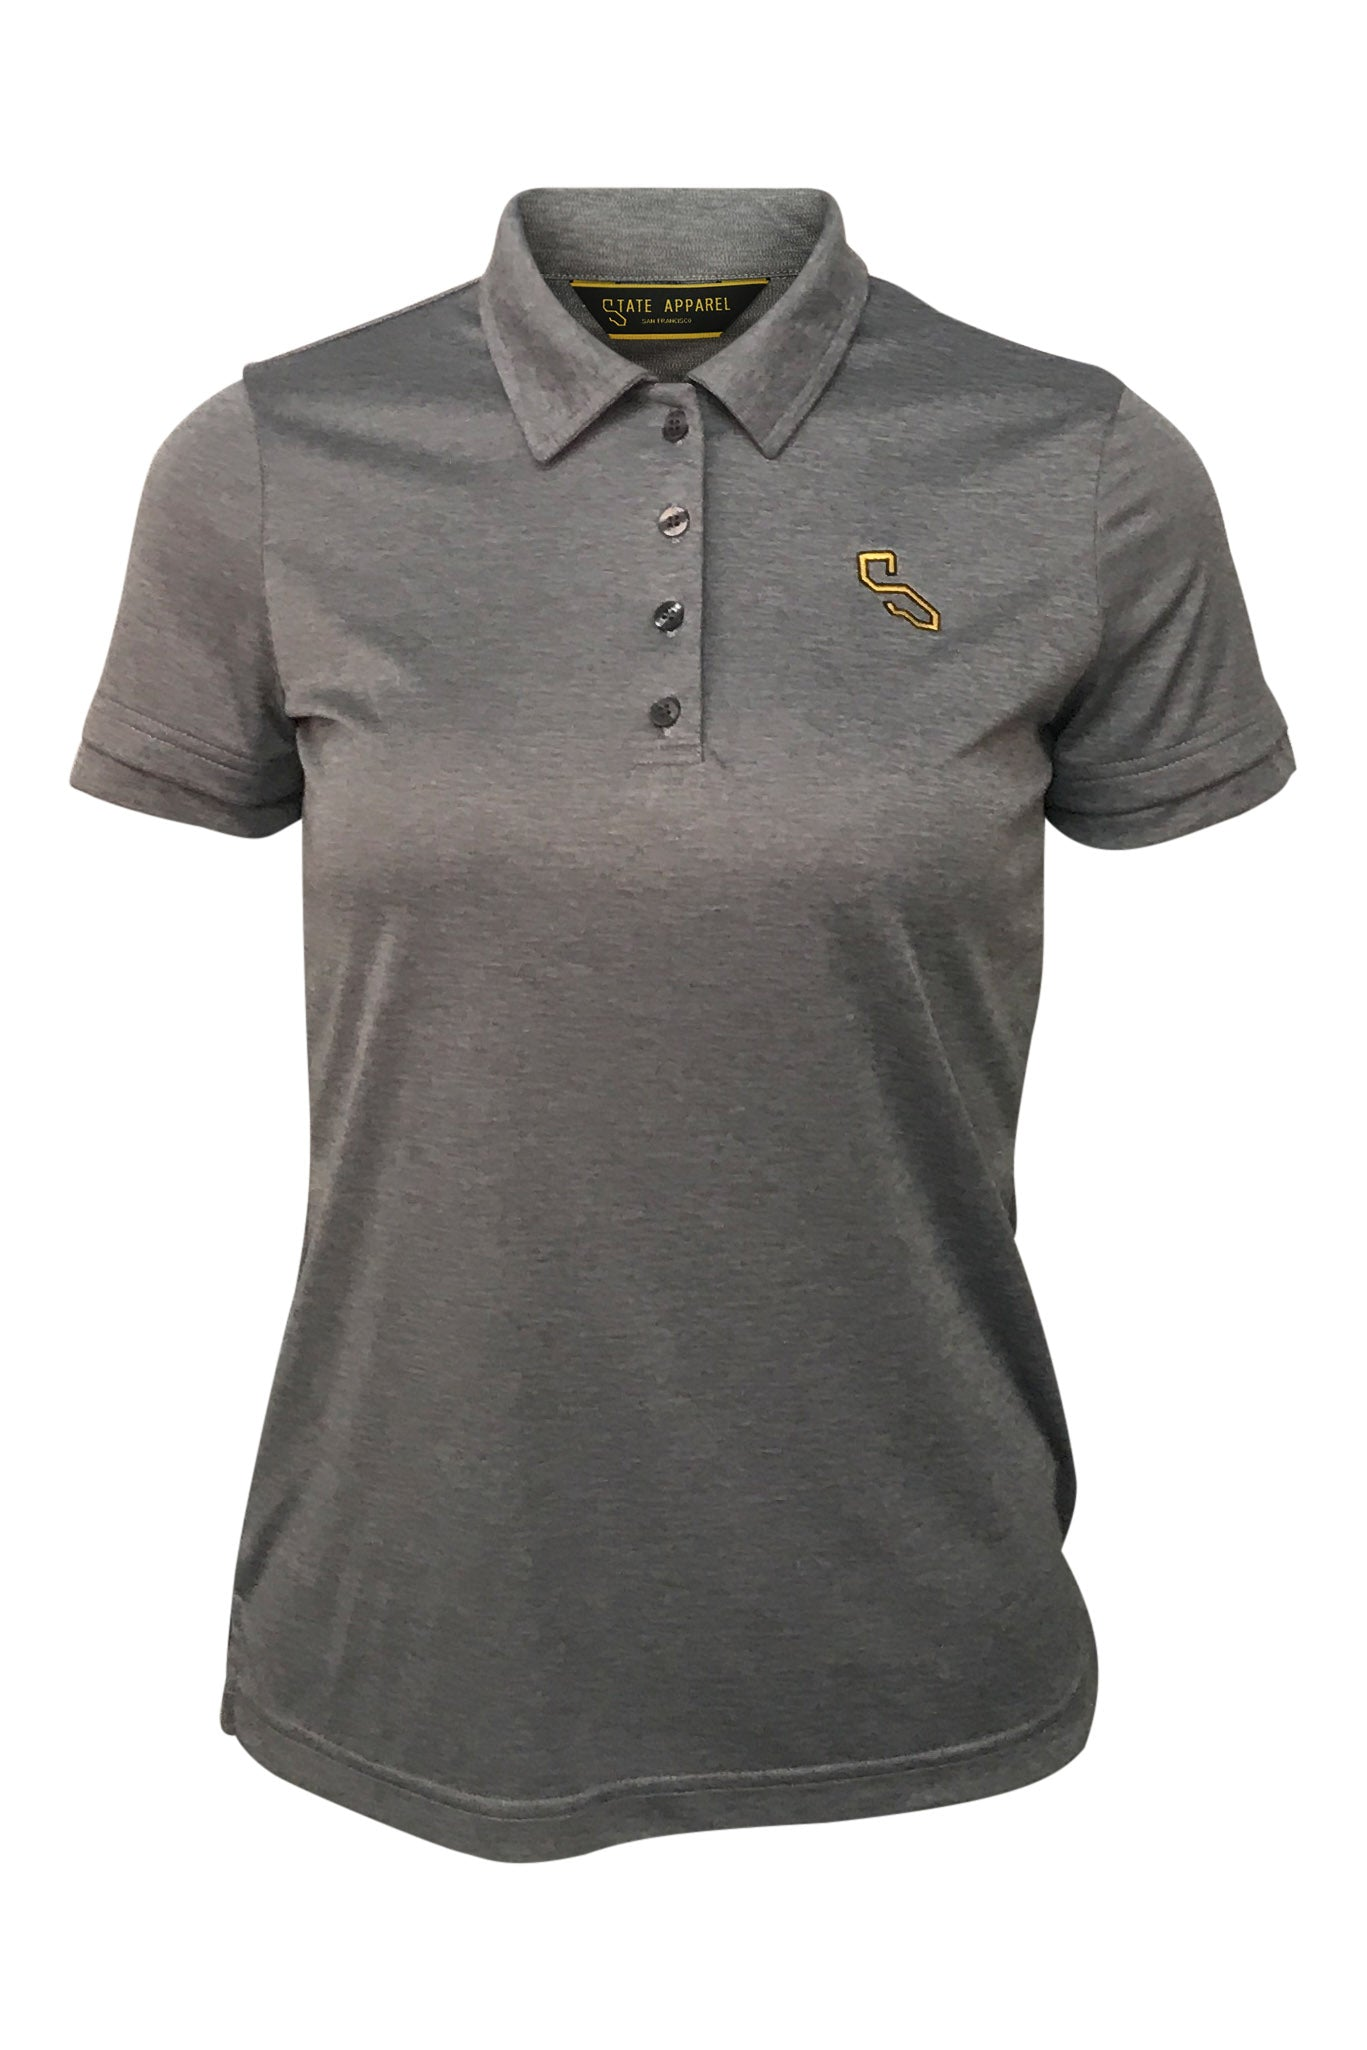 PIXLEY POLO - GRAY